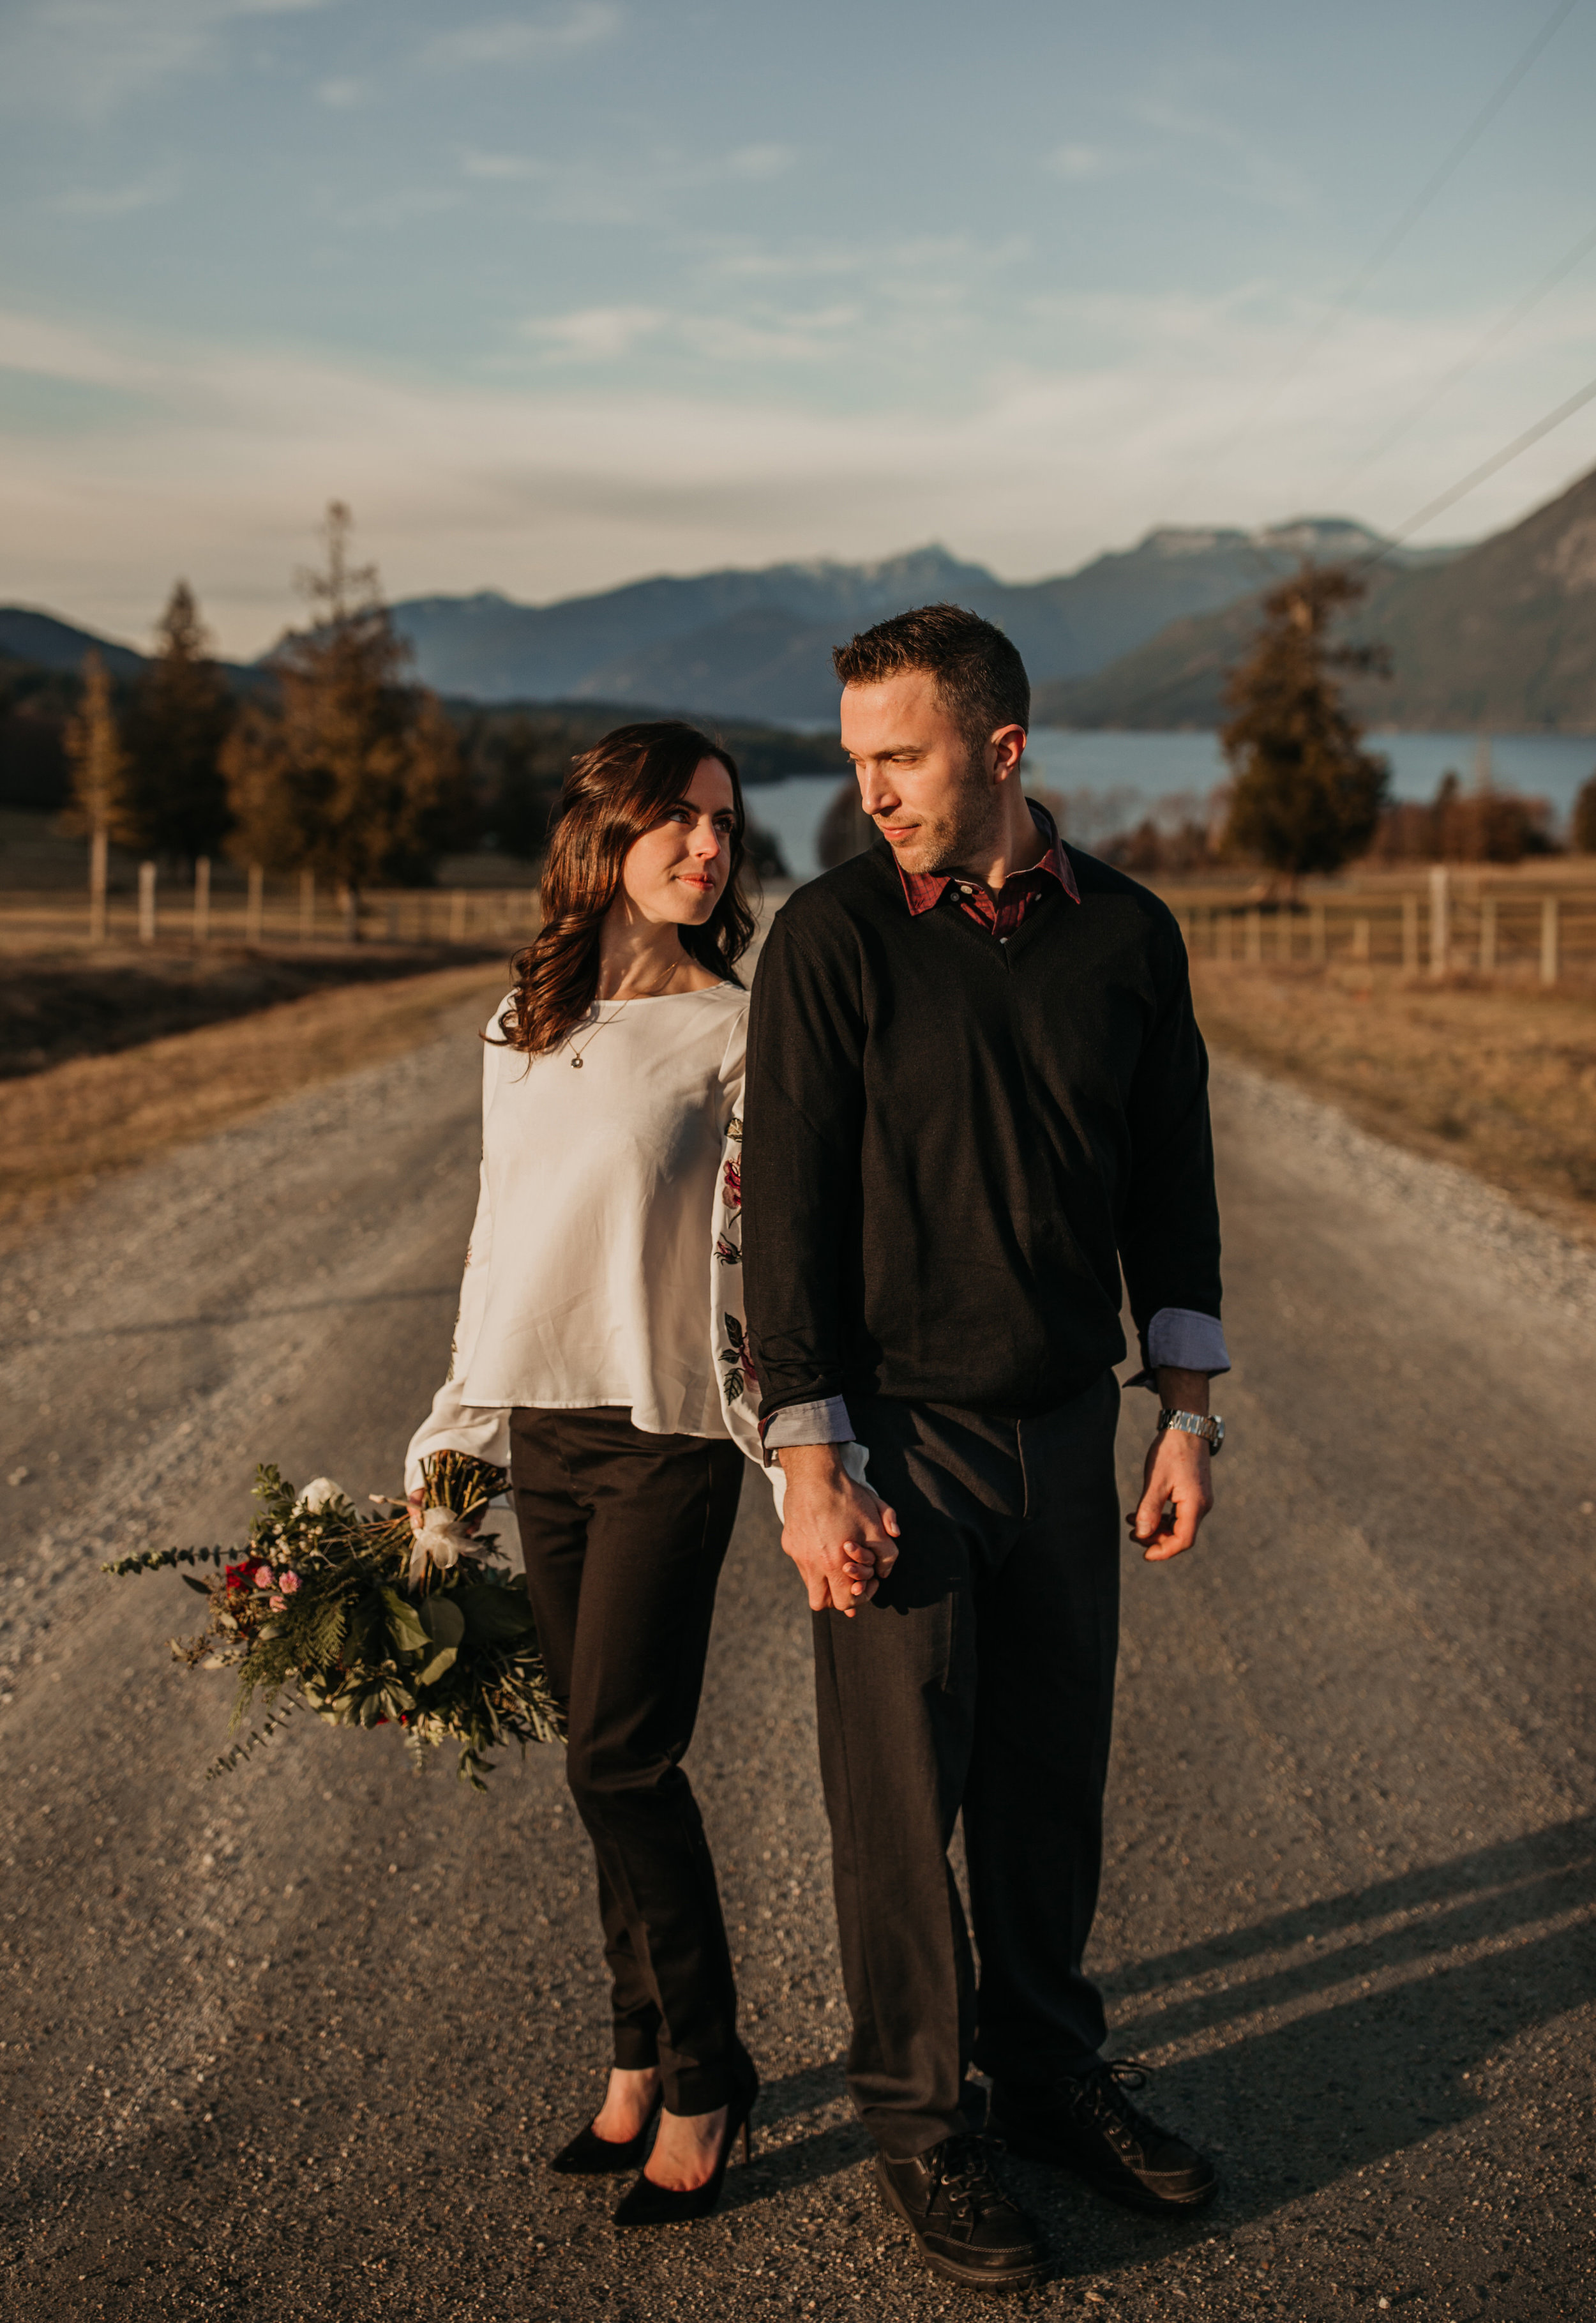 Sunshine Coast Engagement Photos - Sunshine Coast Wedding Photographer - Vancouver Wedding Photographe291r .JPG